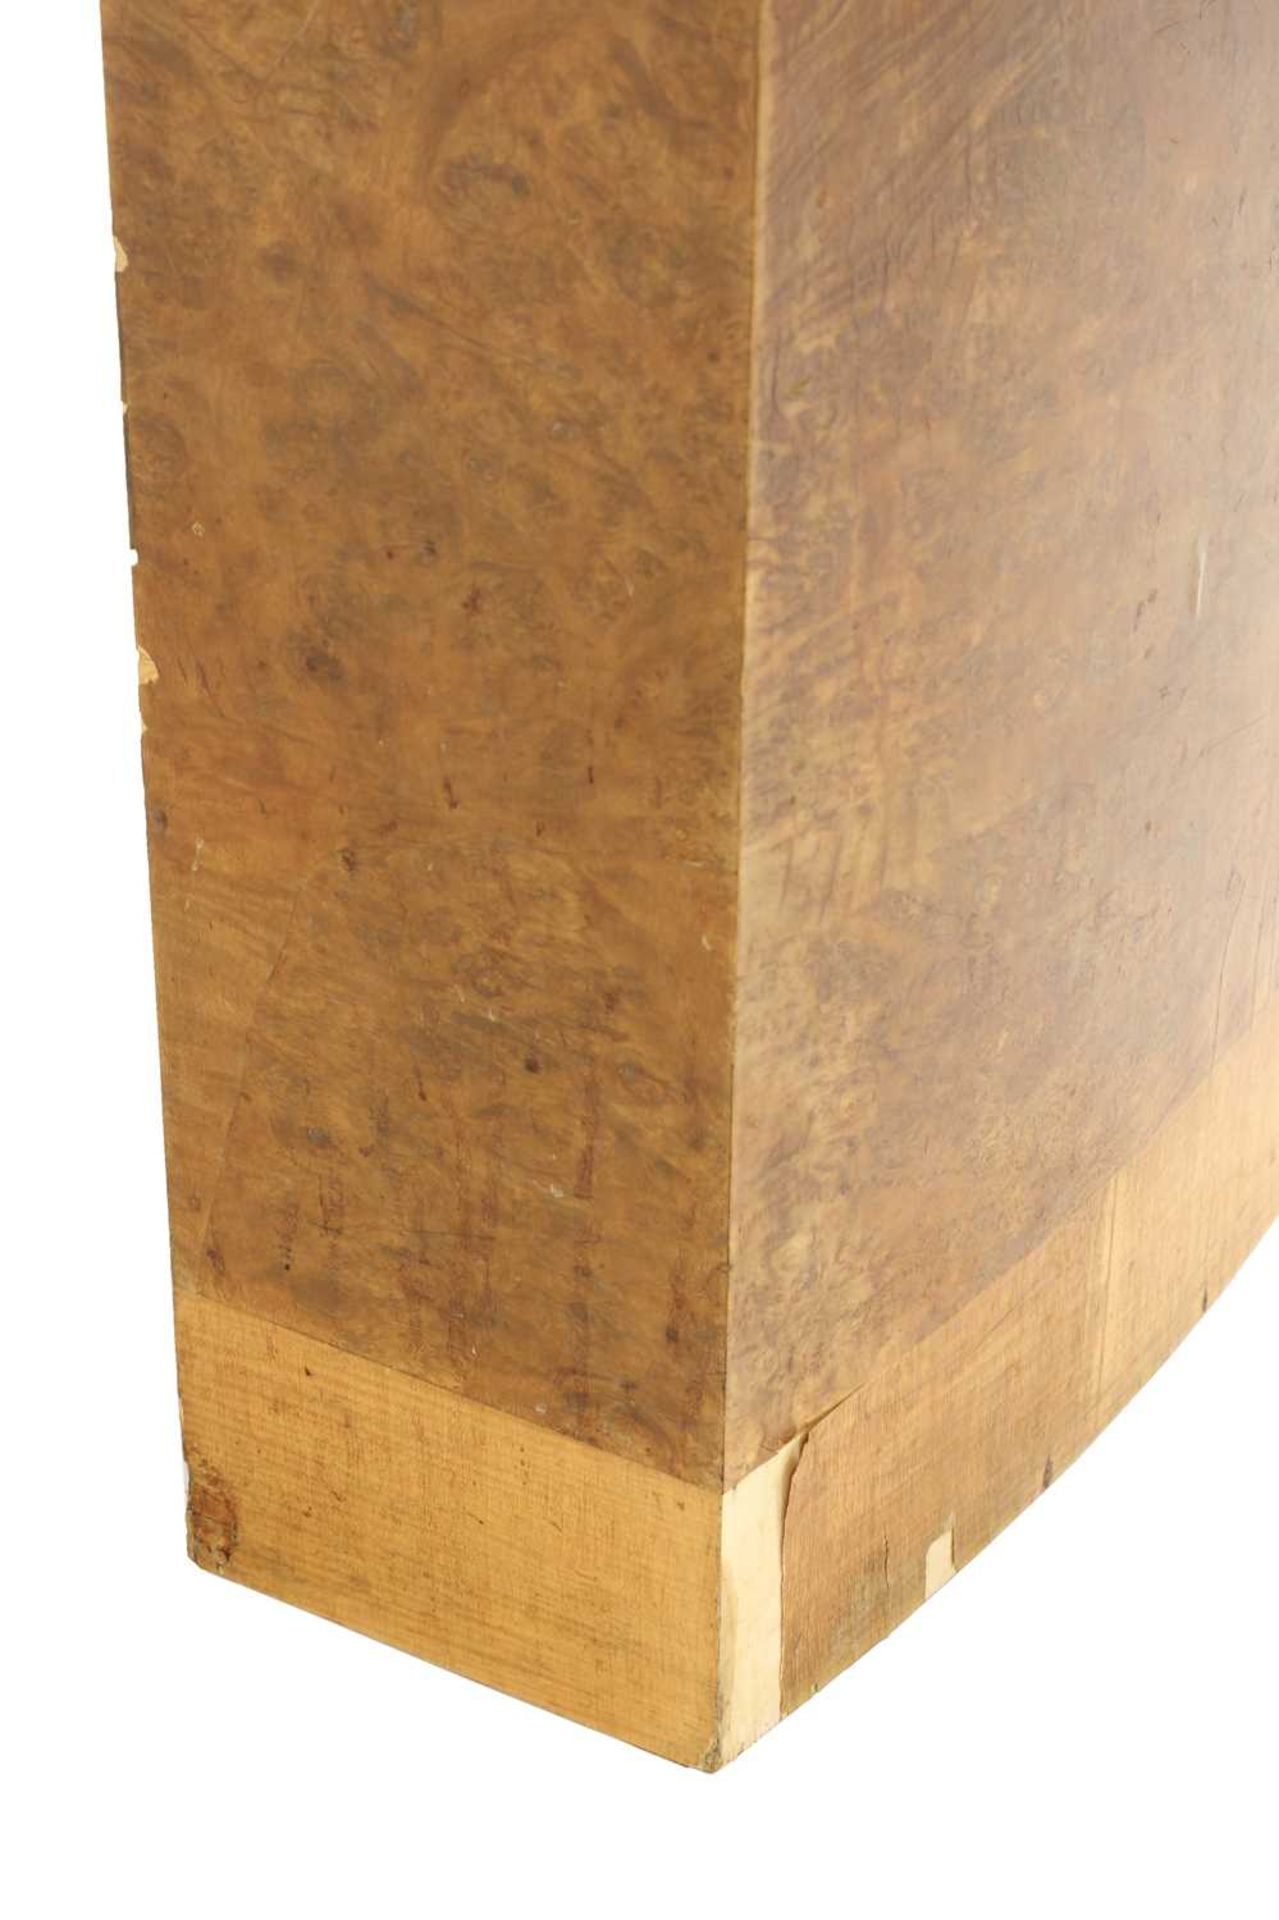 An Art Deco burr maple dining table, - Image 3 of 5